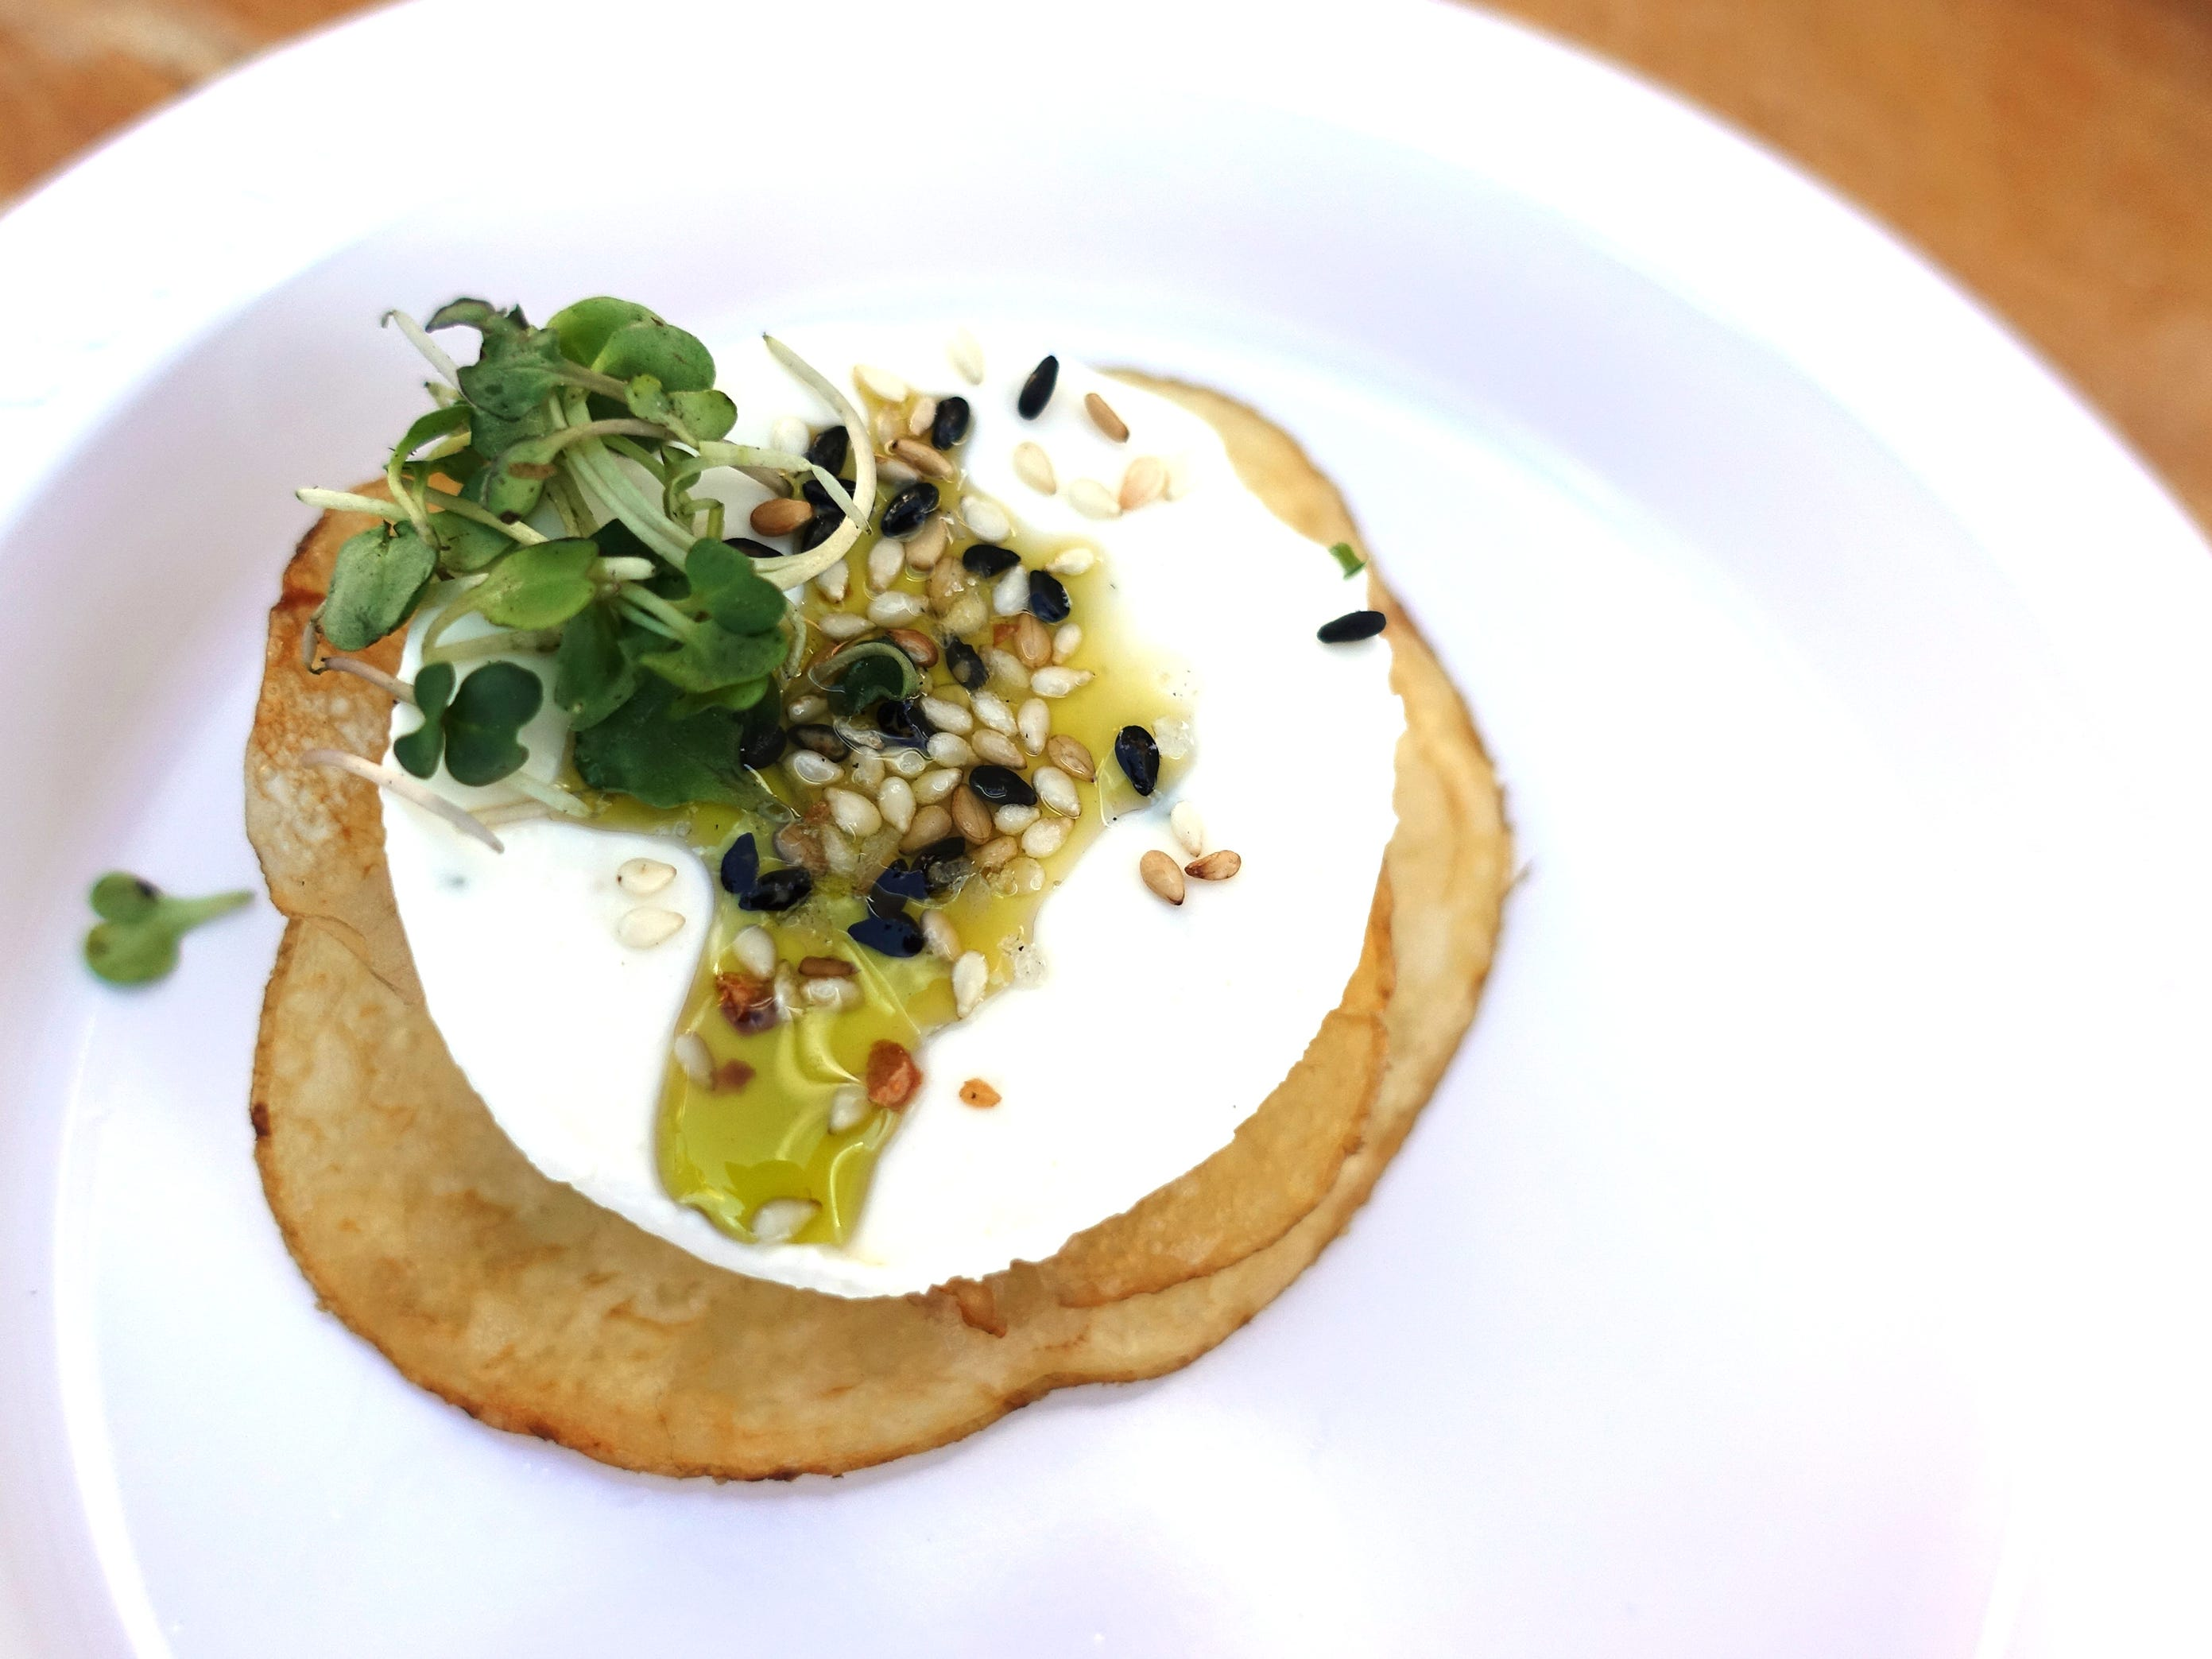 Sour cream and onion panna cotta with Frites Street chip, everything bagel seasoning, chive oil and micro arugula from Stock & Stable at the 2019 Devour Culinary Classic at the Desert Botanical Garden in Phoenix.